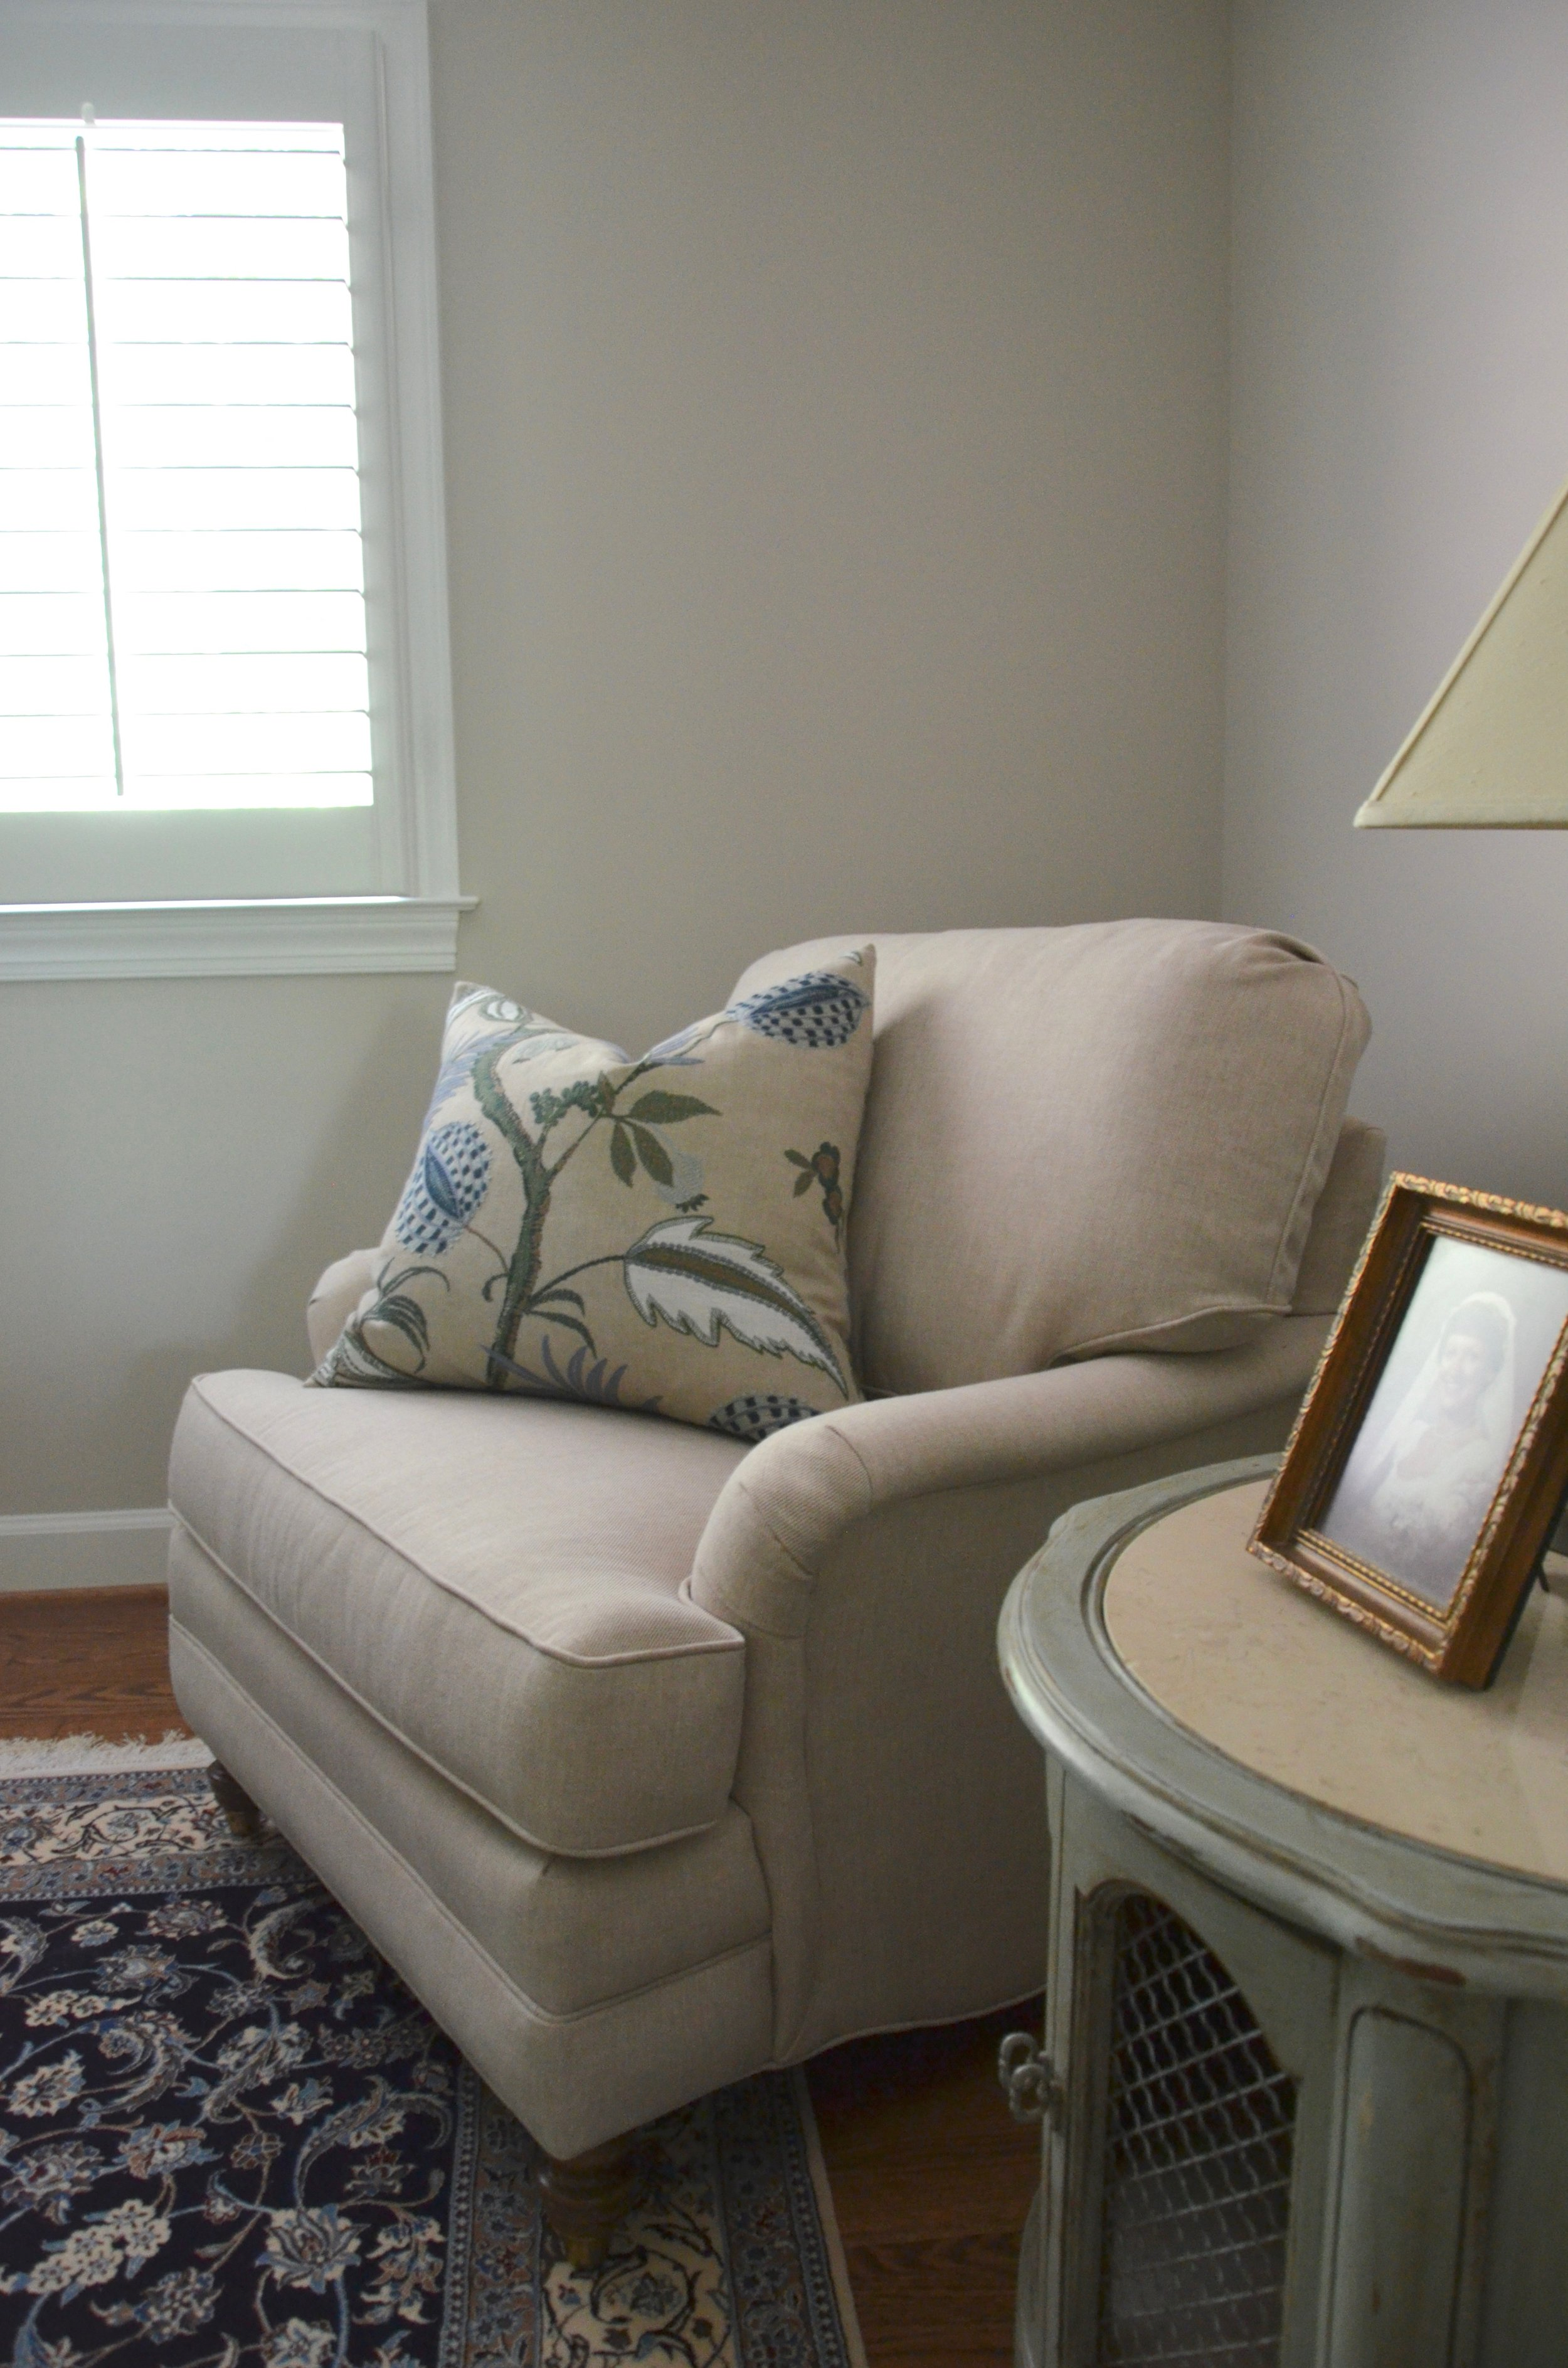 """Master Sitting Room Chair in Client """"Turning-down for an Update"""" in McLean, VA. Turndown Service and Design by Valerianne of DC."""